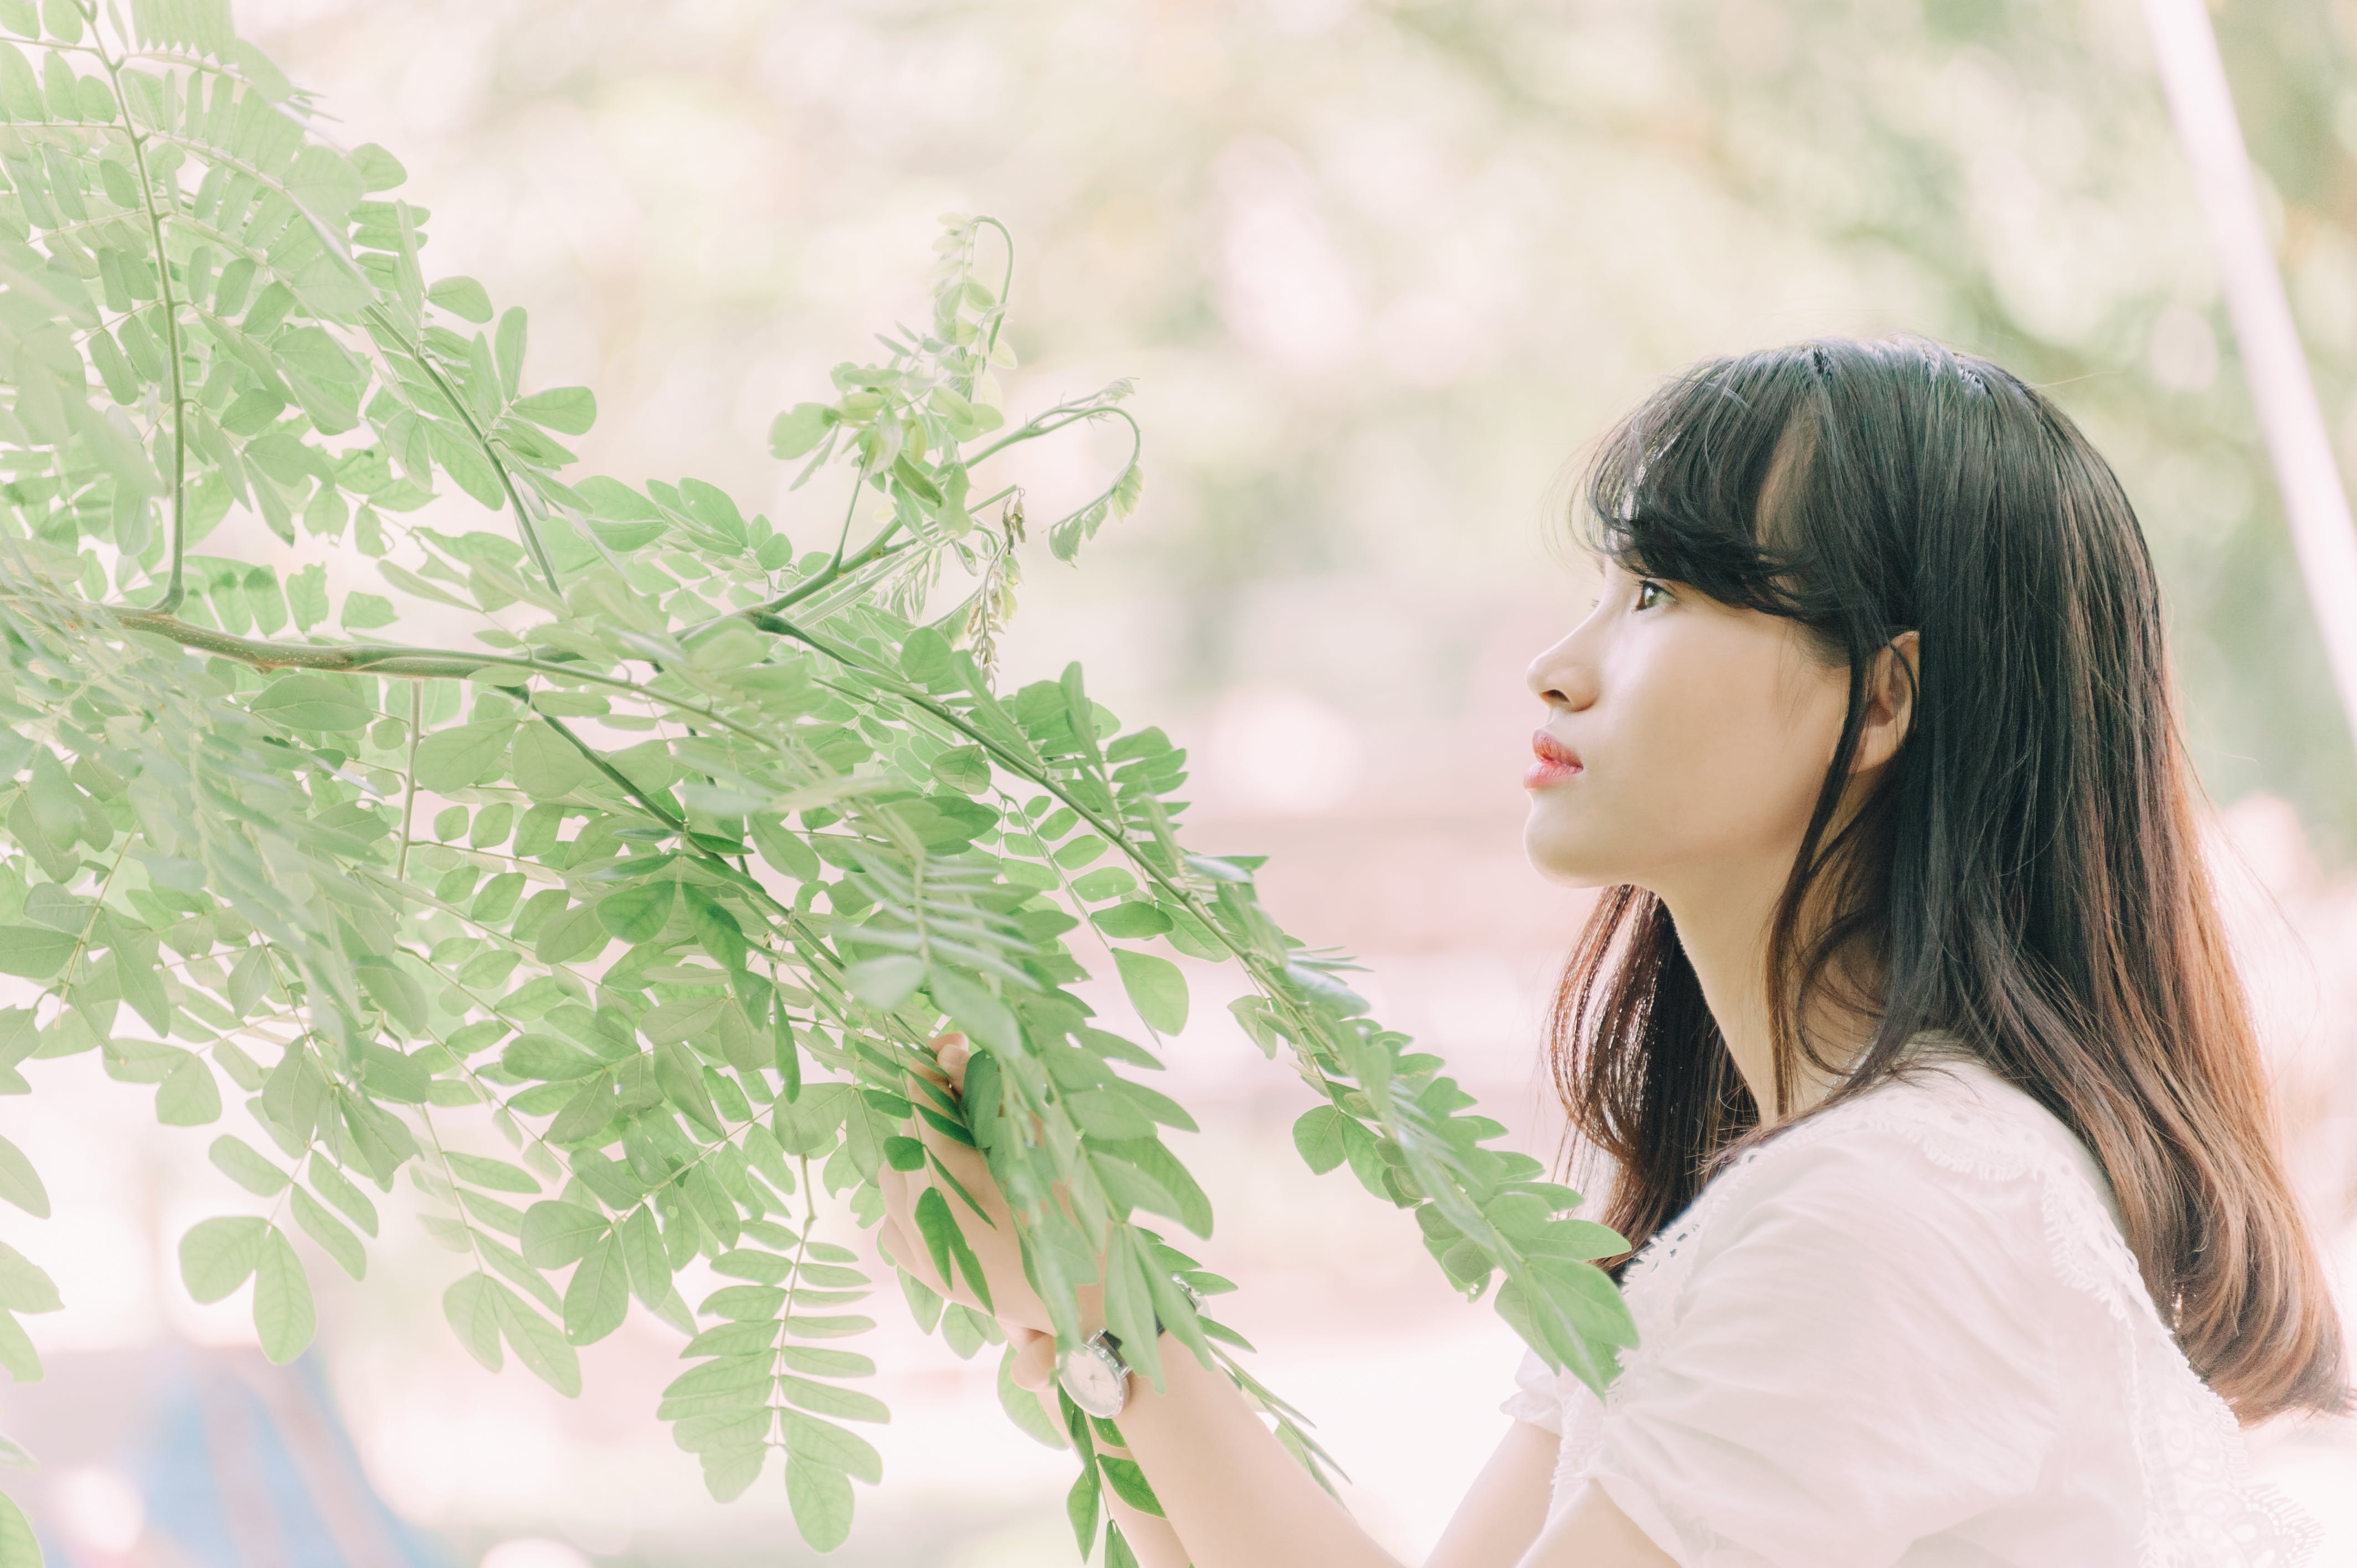 Woman Looking at Green Leaves of a Tree